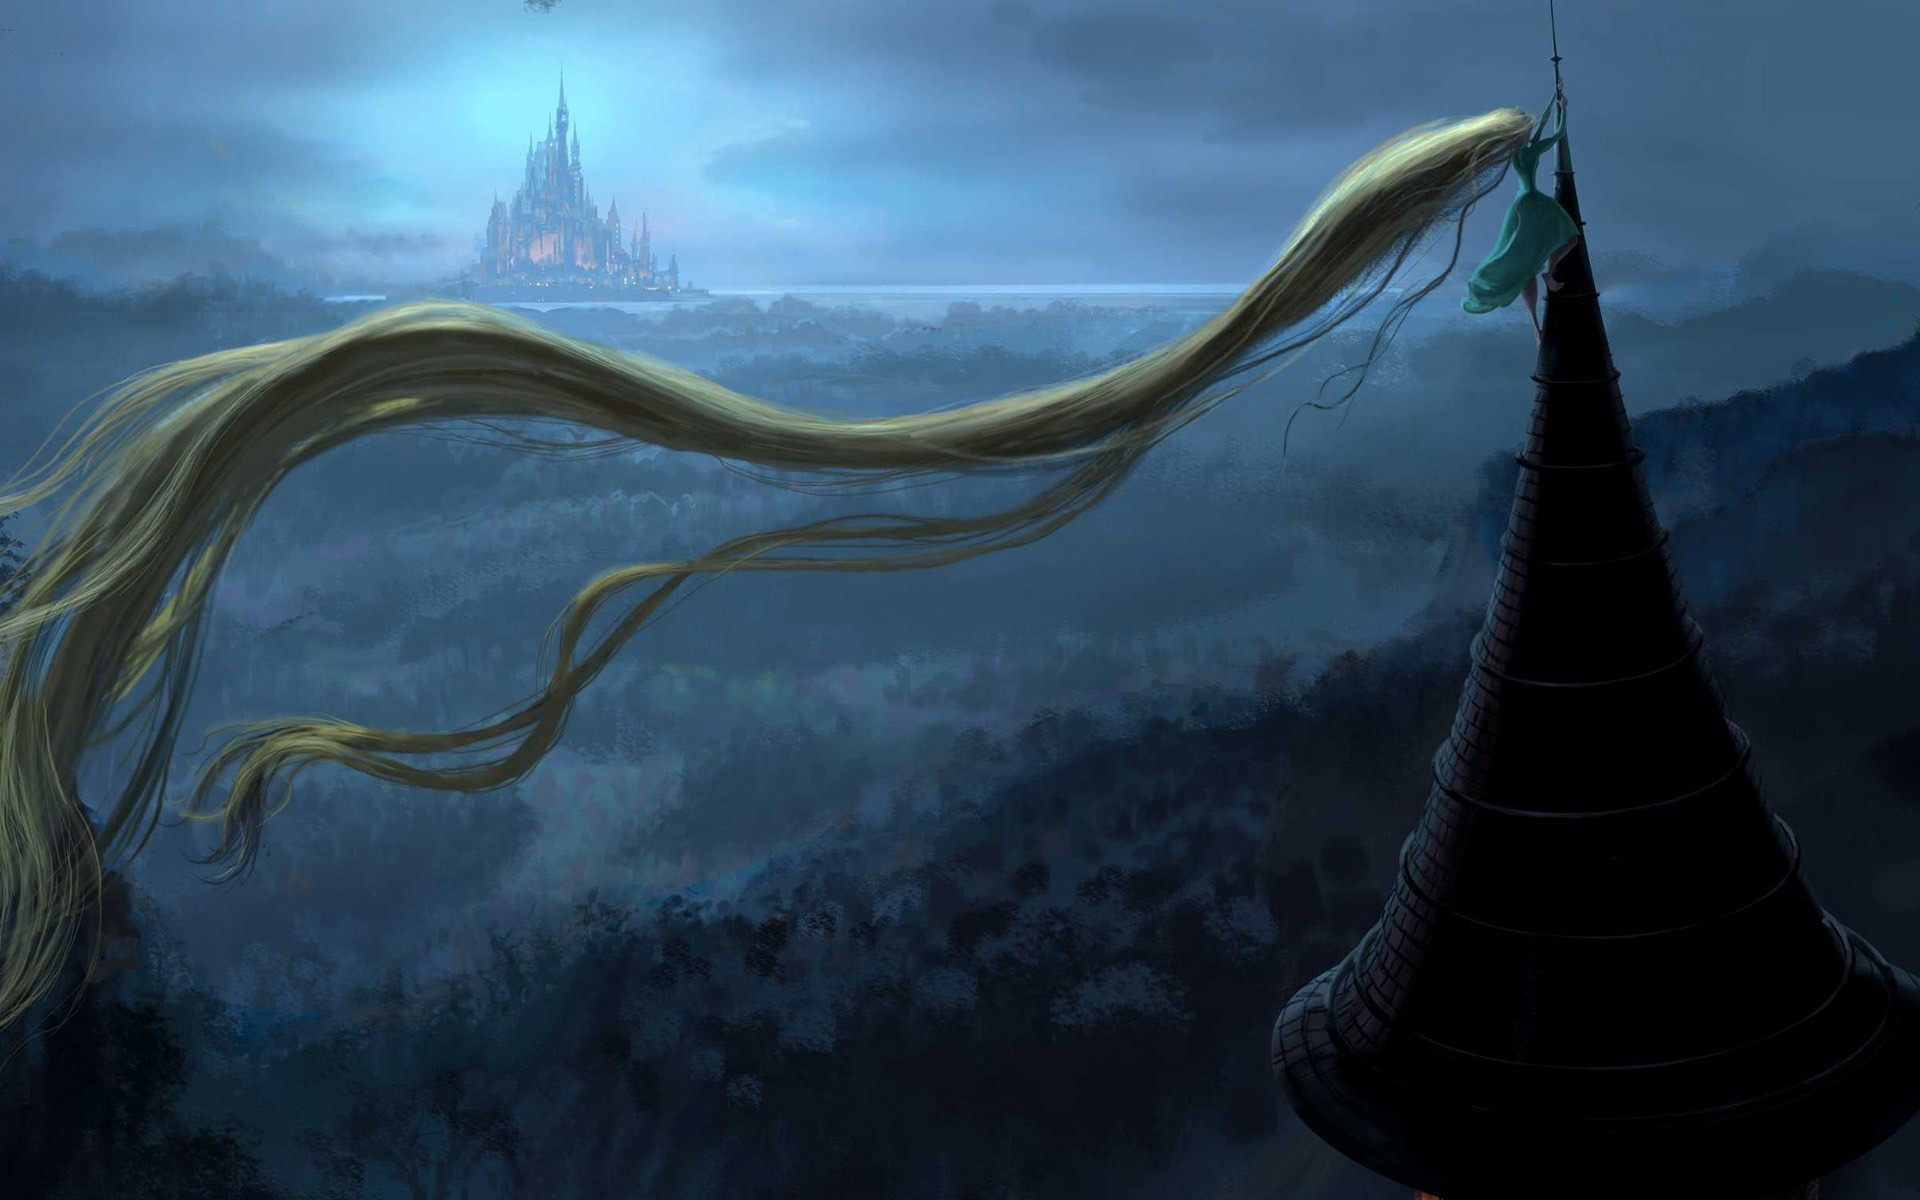 Disney Movies Hd Wallpapers: Disney HD Wallpaper (74+ Images